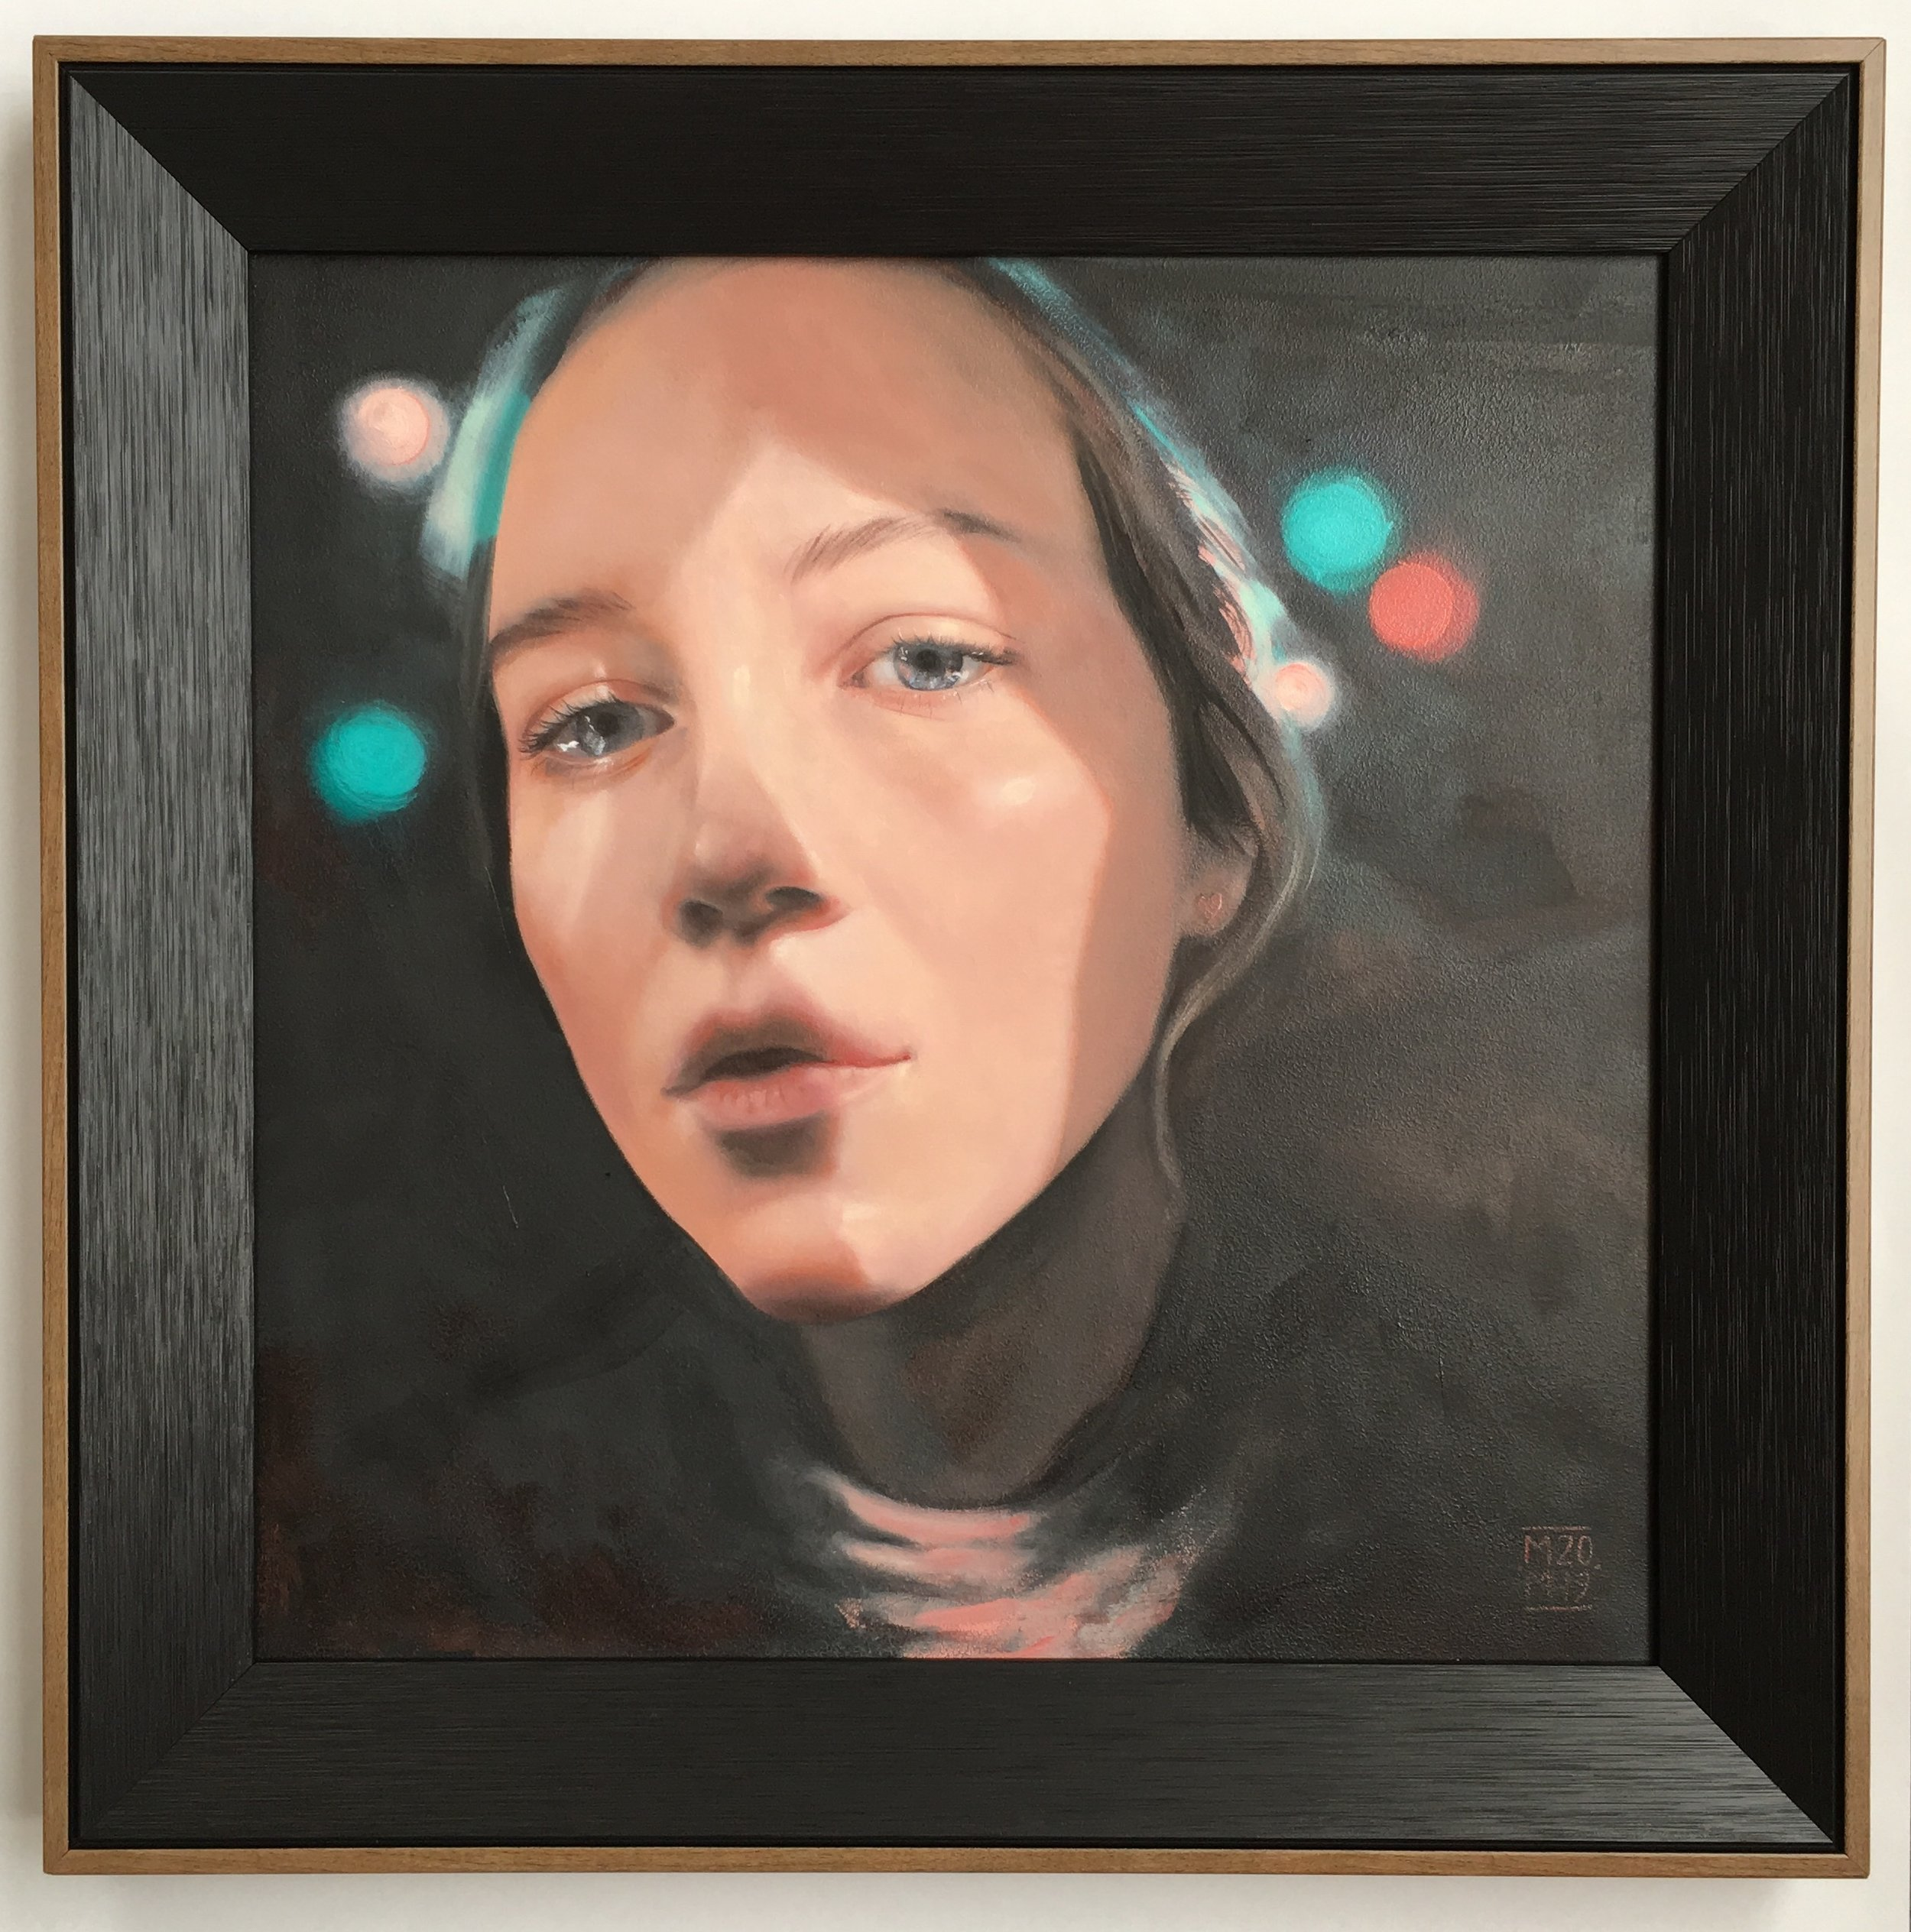 Into The Light 2019  oil on panel  300 x 300mm (390 x 390mm framed size)  NZ$2200  enquiries to:  ron@exhibitionsgallery.co.nz